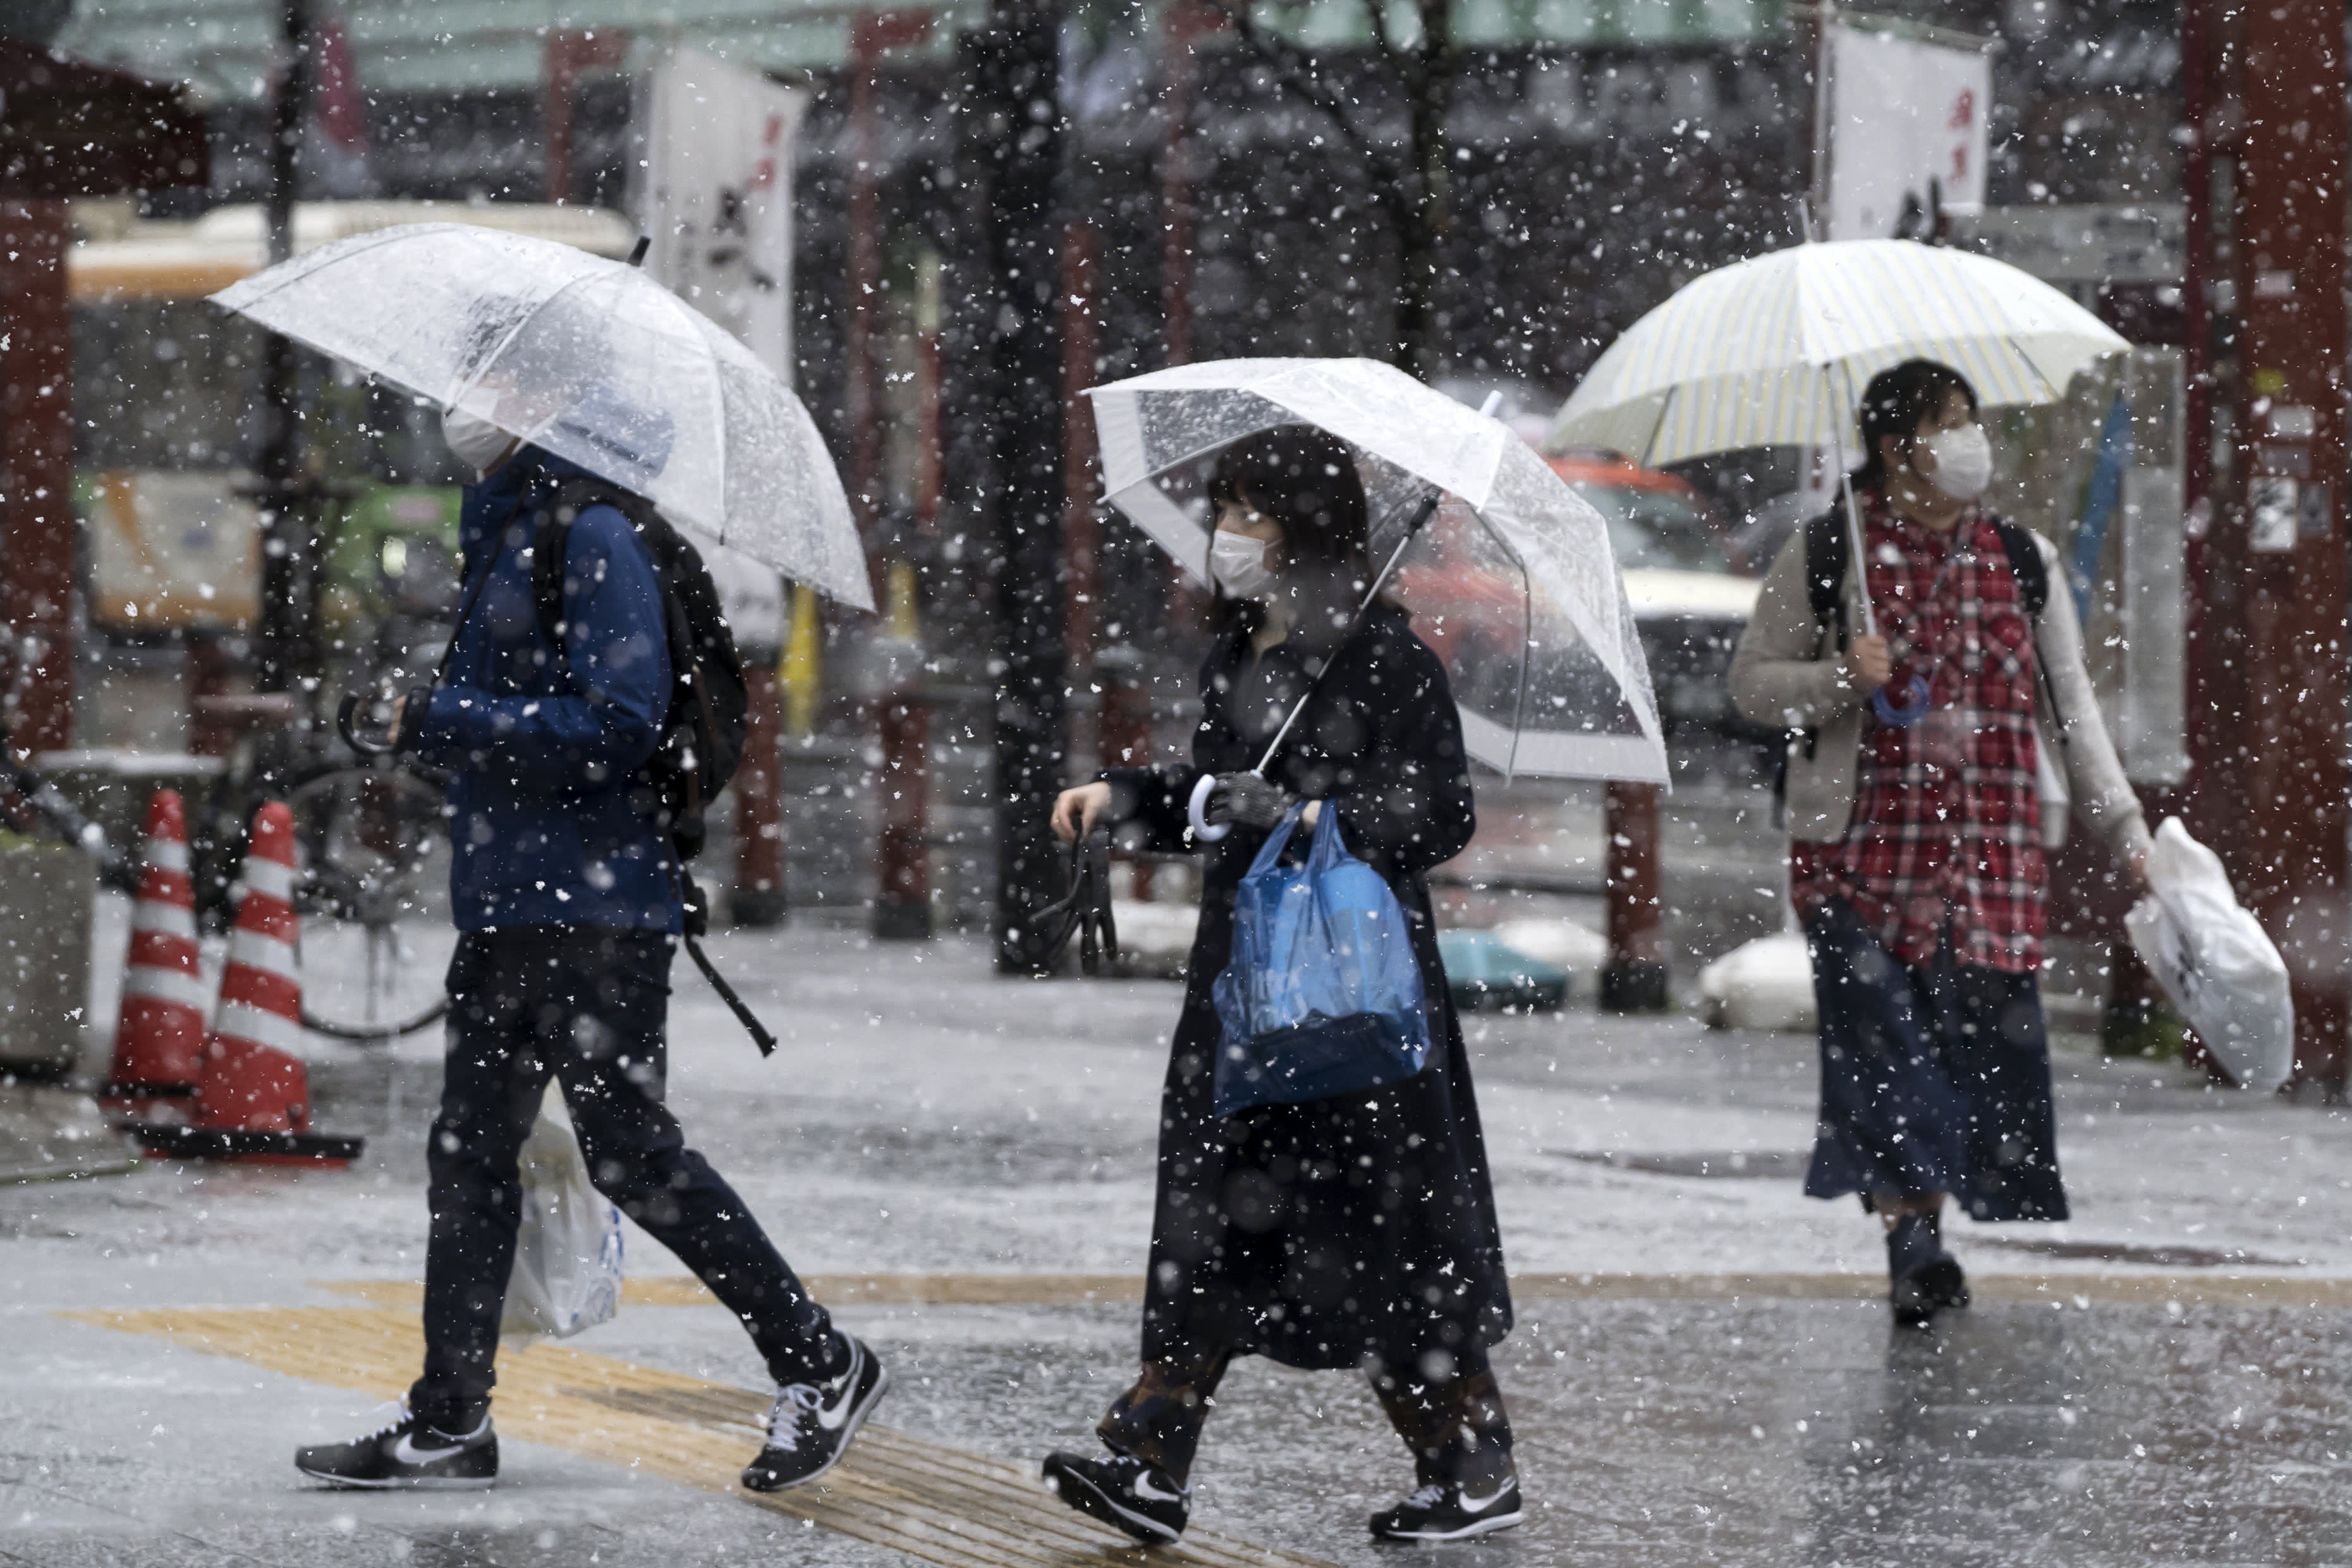 Covid resurgence in Japan, South Korea could hit Asia's economic recovery